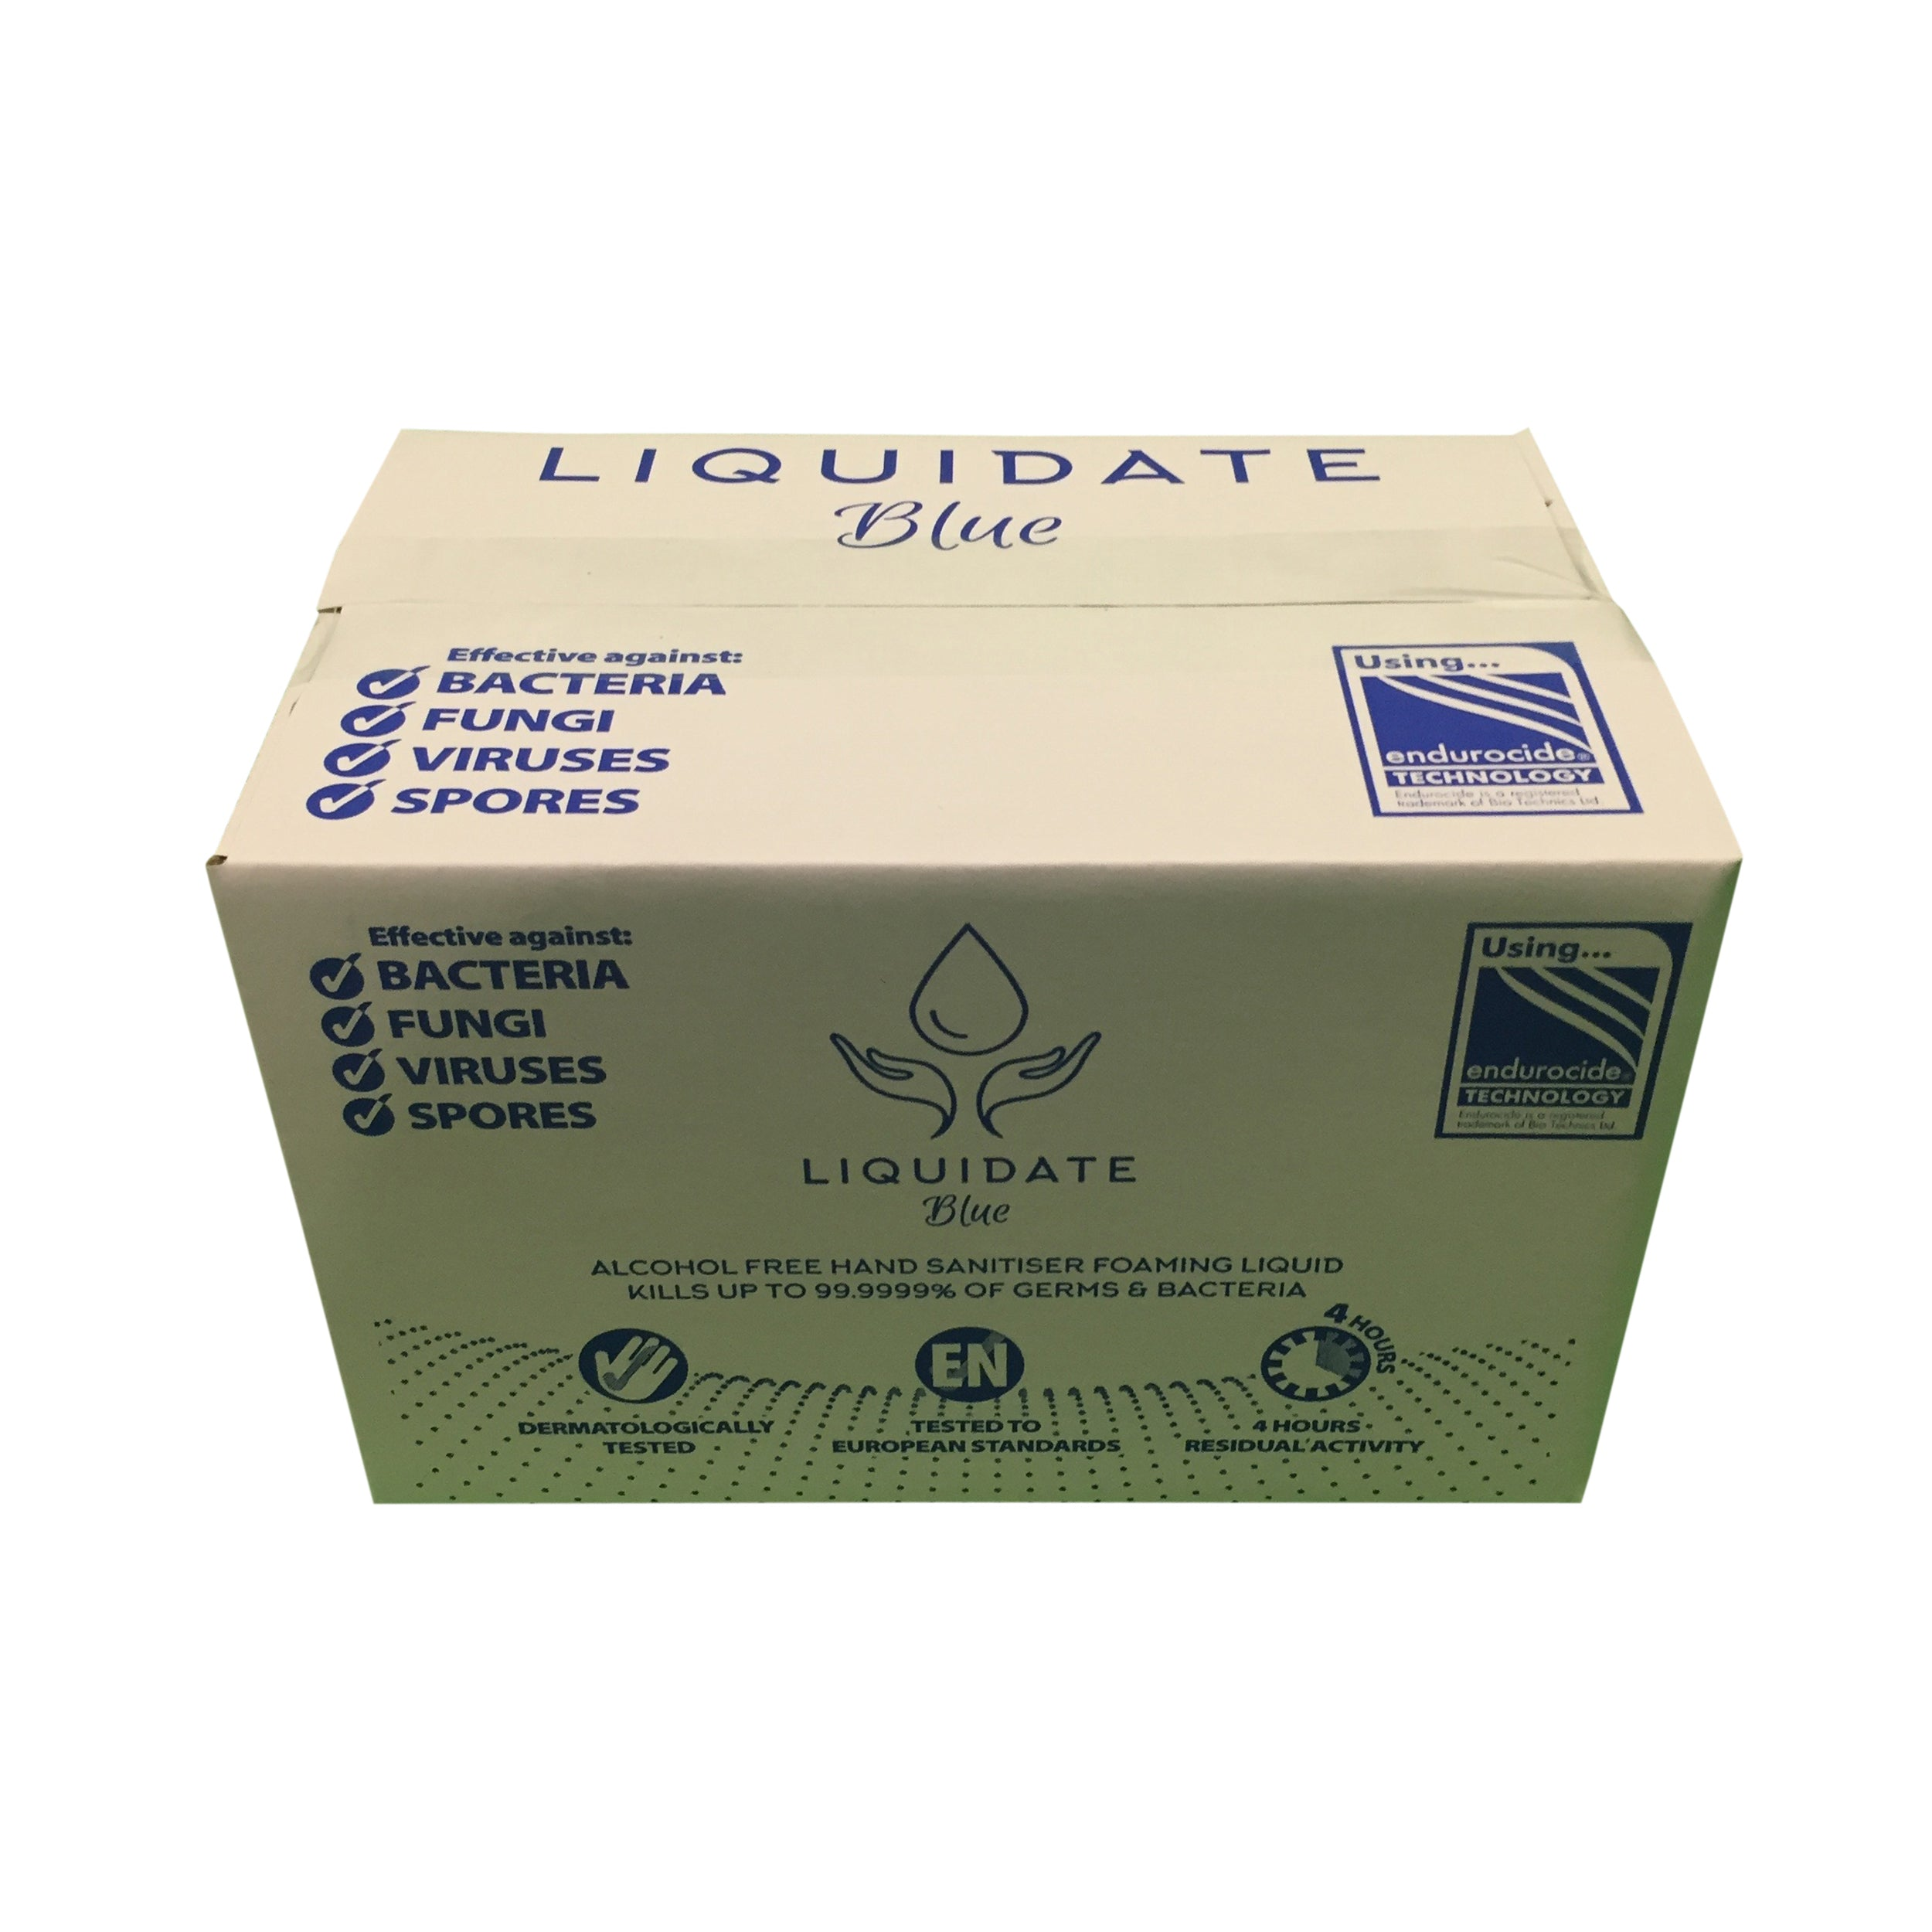 Liquidate Alcohol free Hand Foamer sanitiser 200ml bottles / 24 units per case